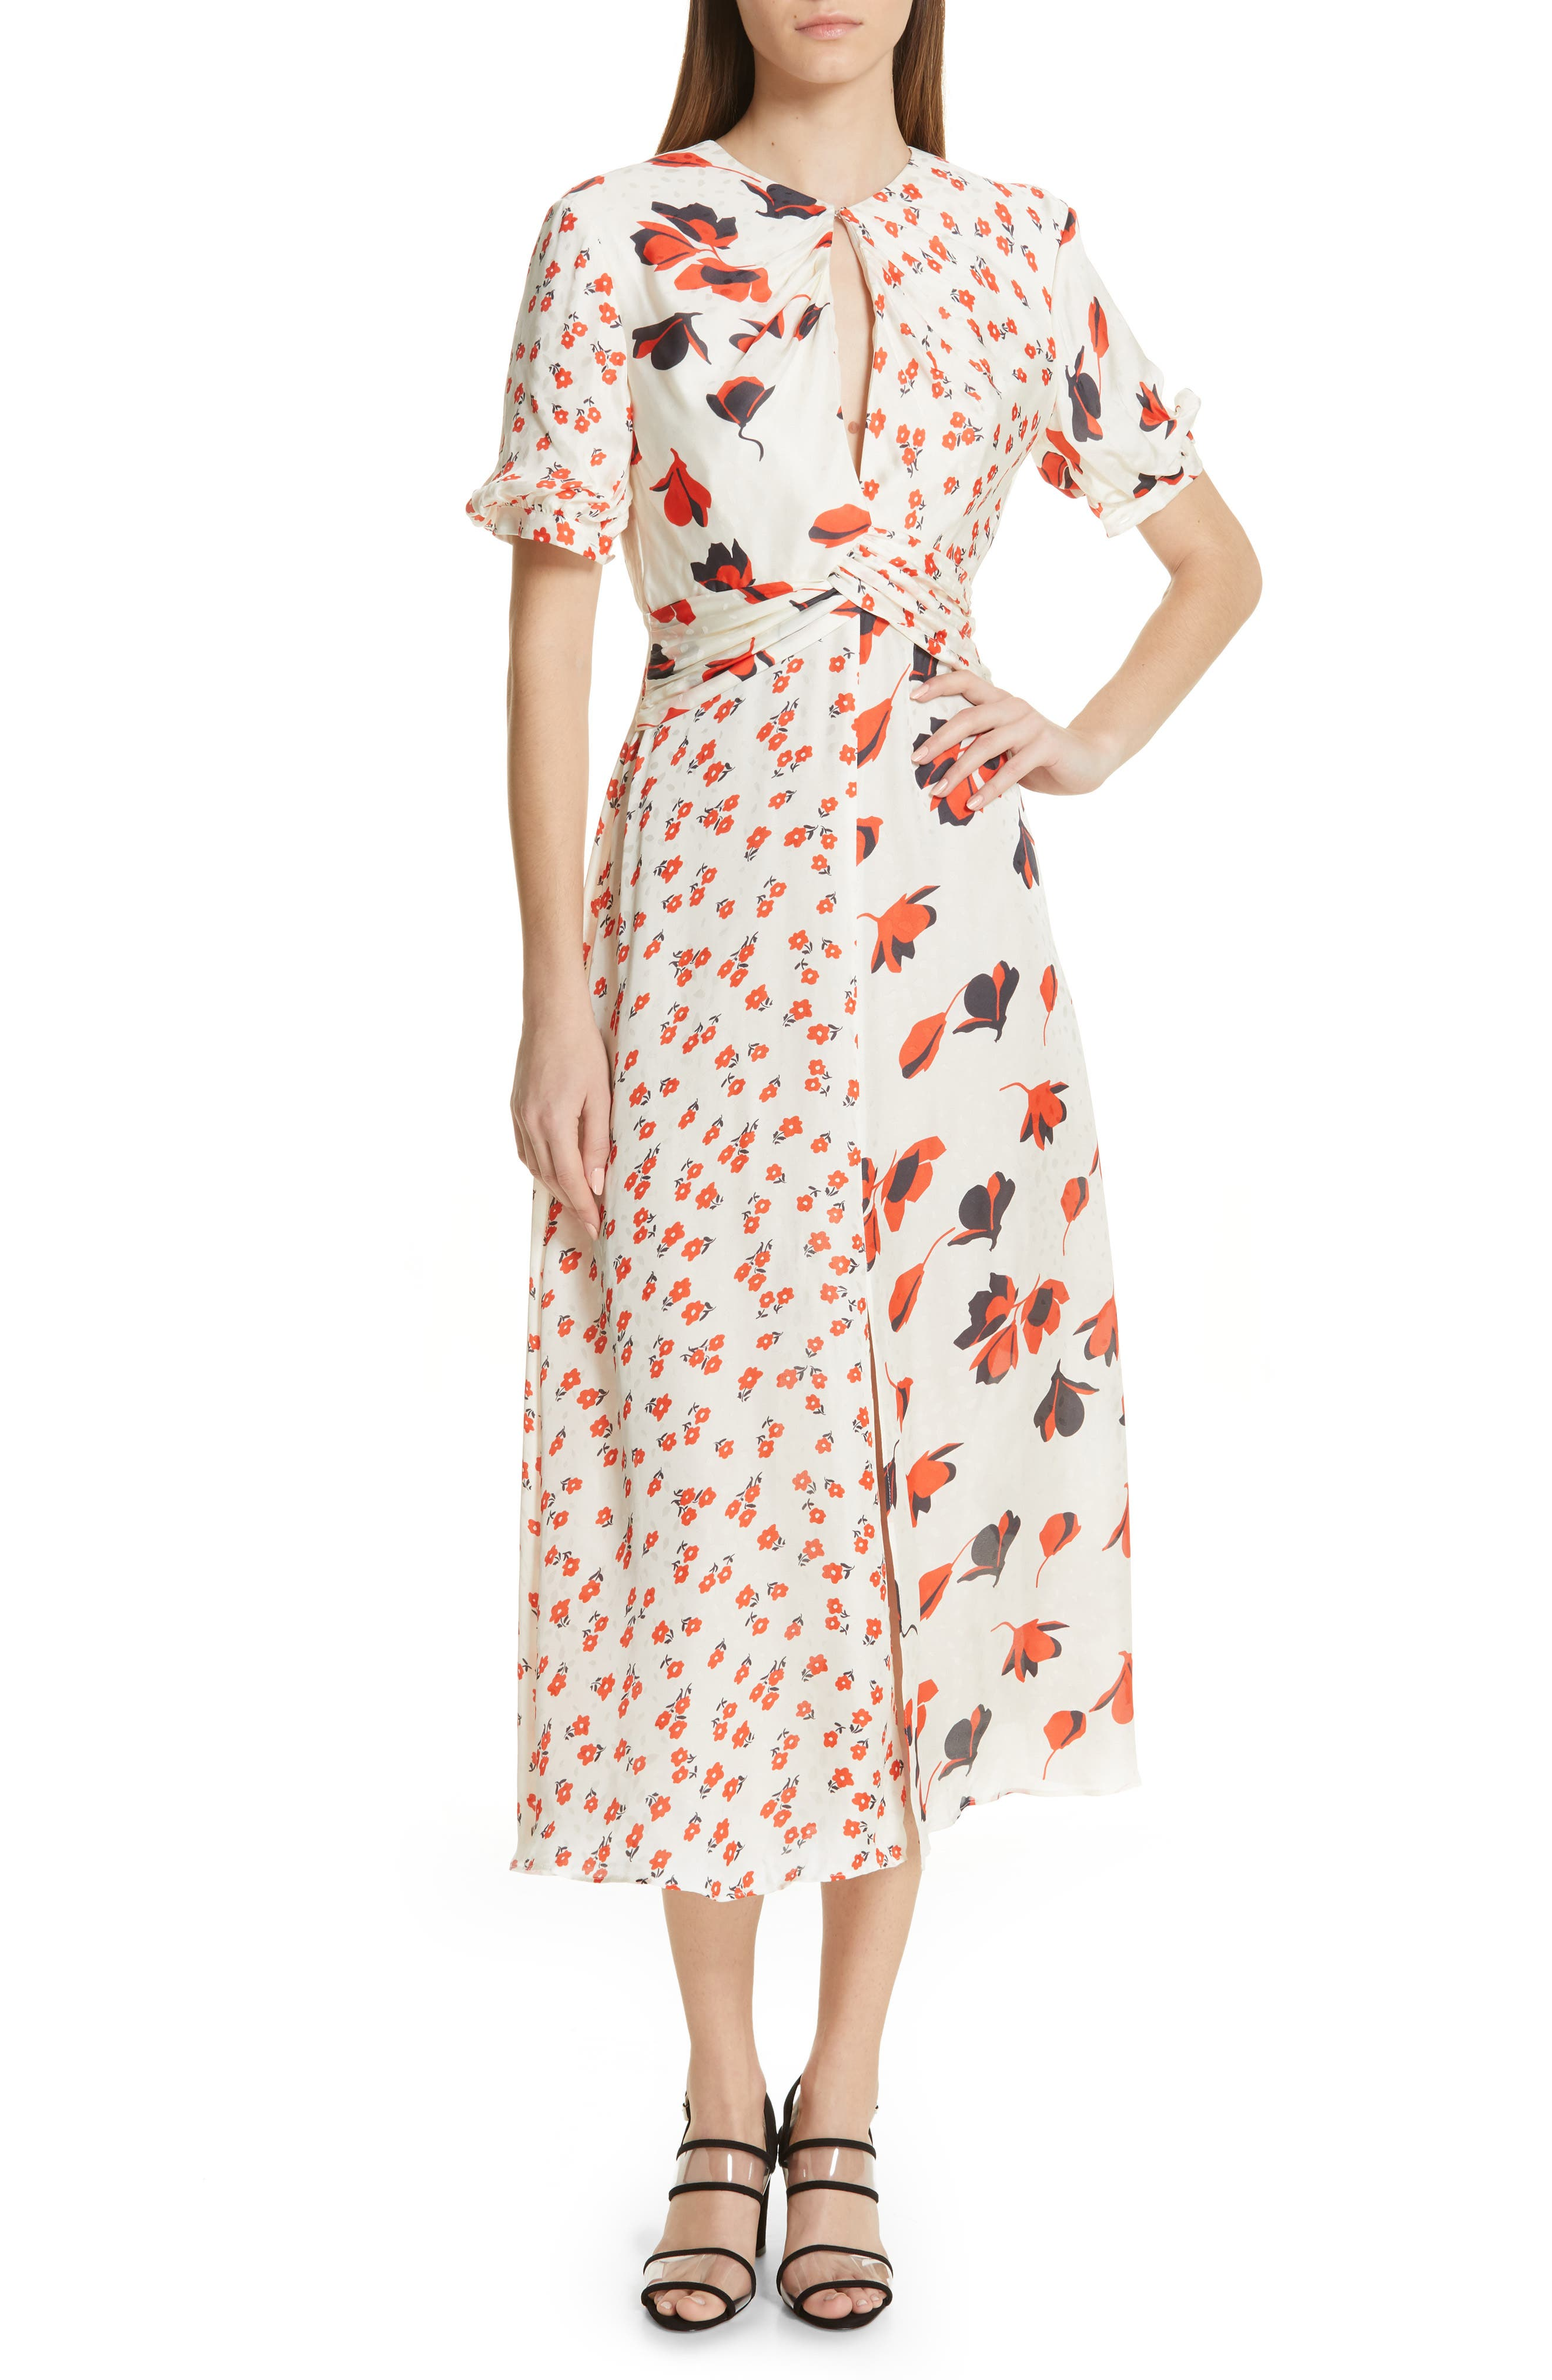 Mixed Floral Print Midi Dress by Self Portrait